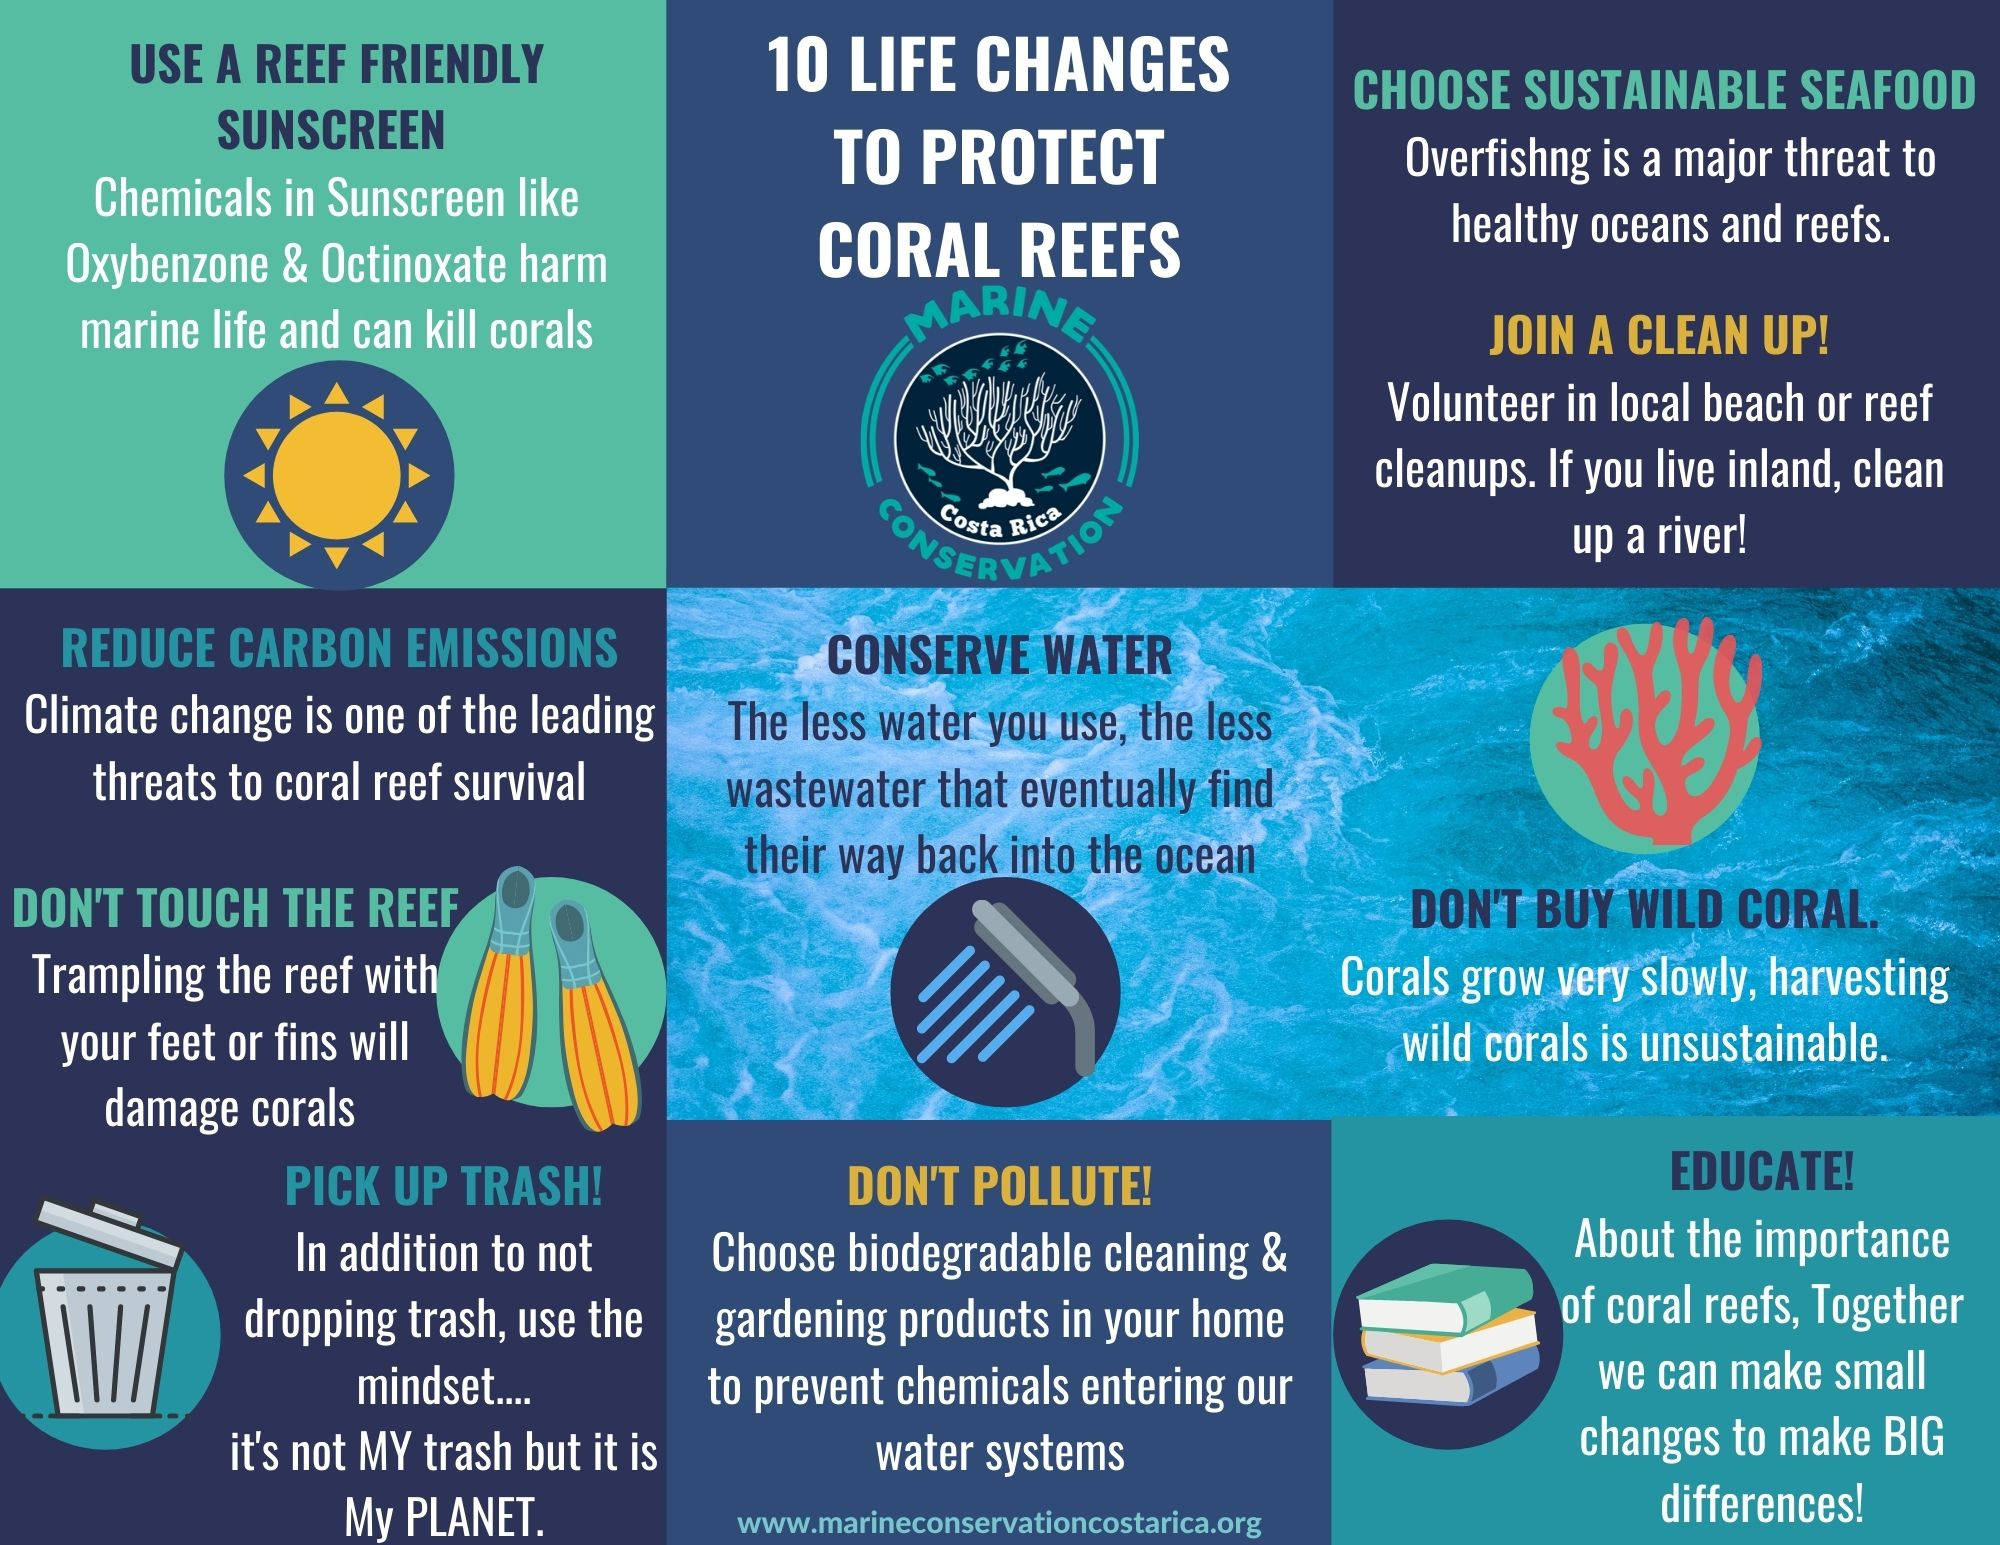 10 Life Changes to Protect Coral Reefs